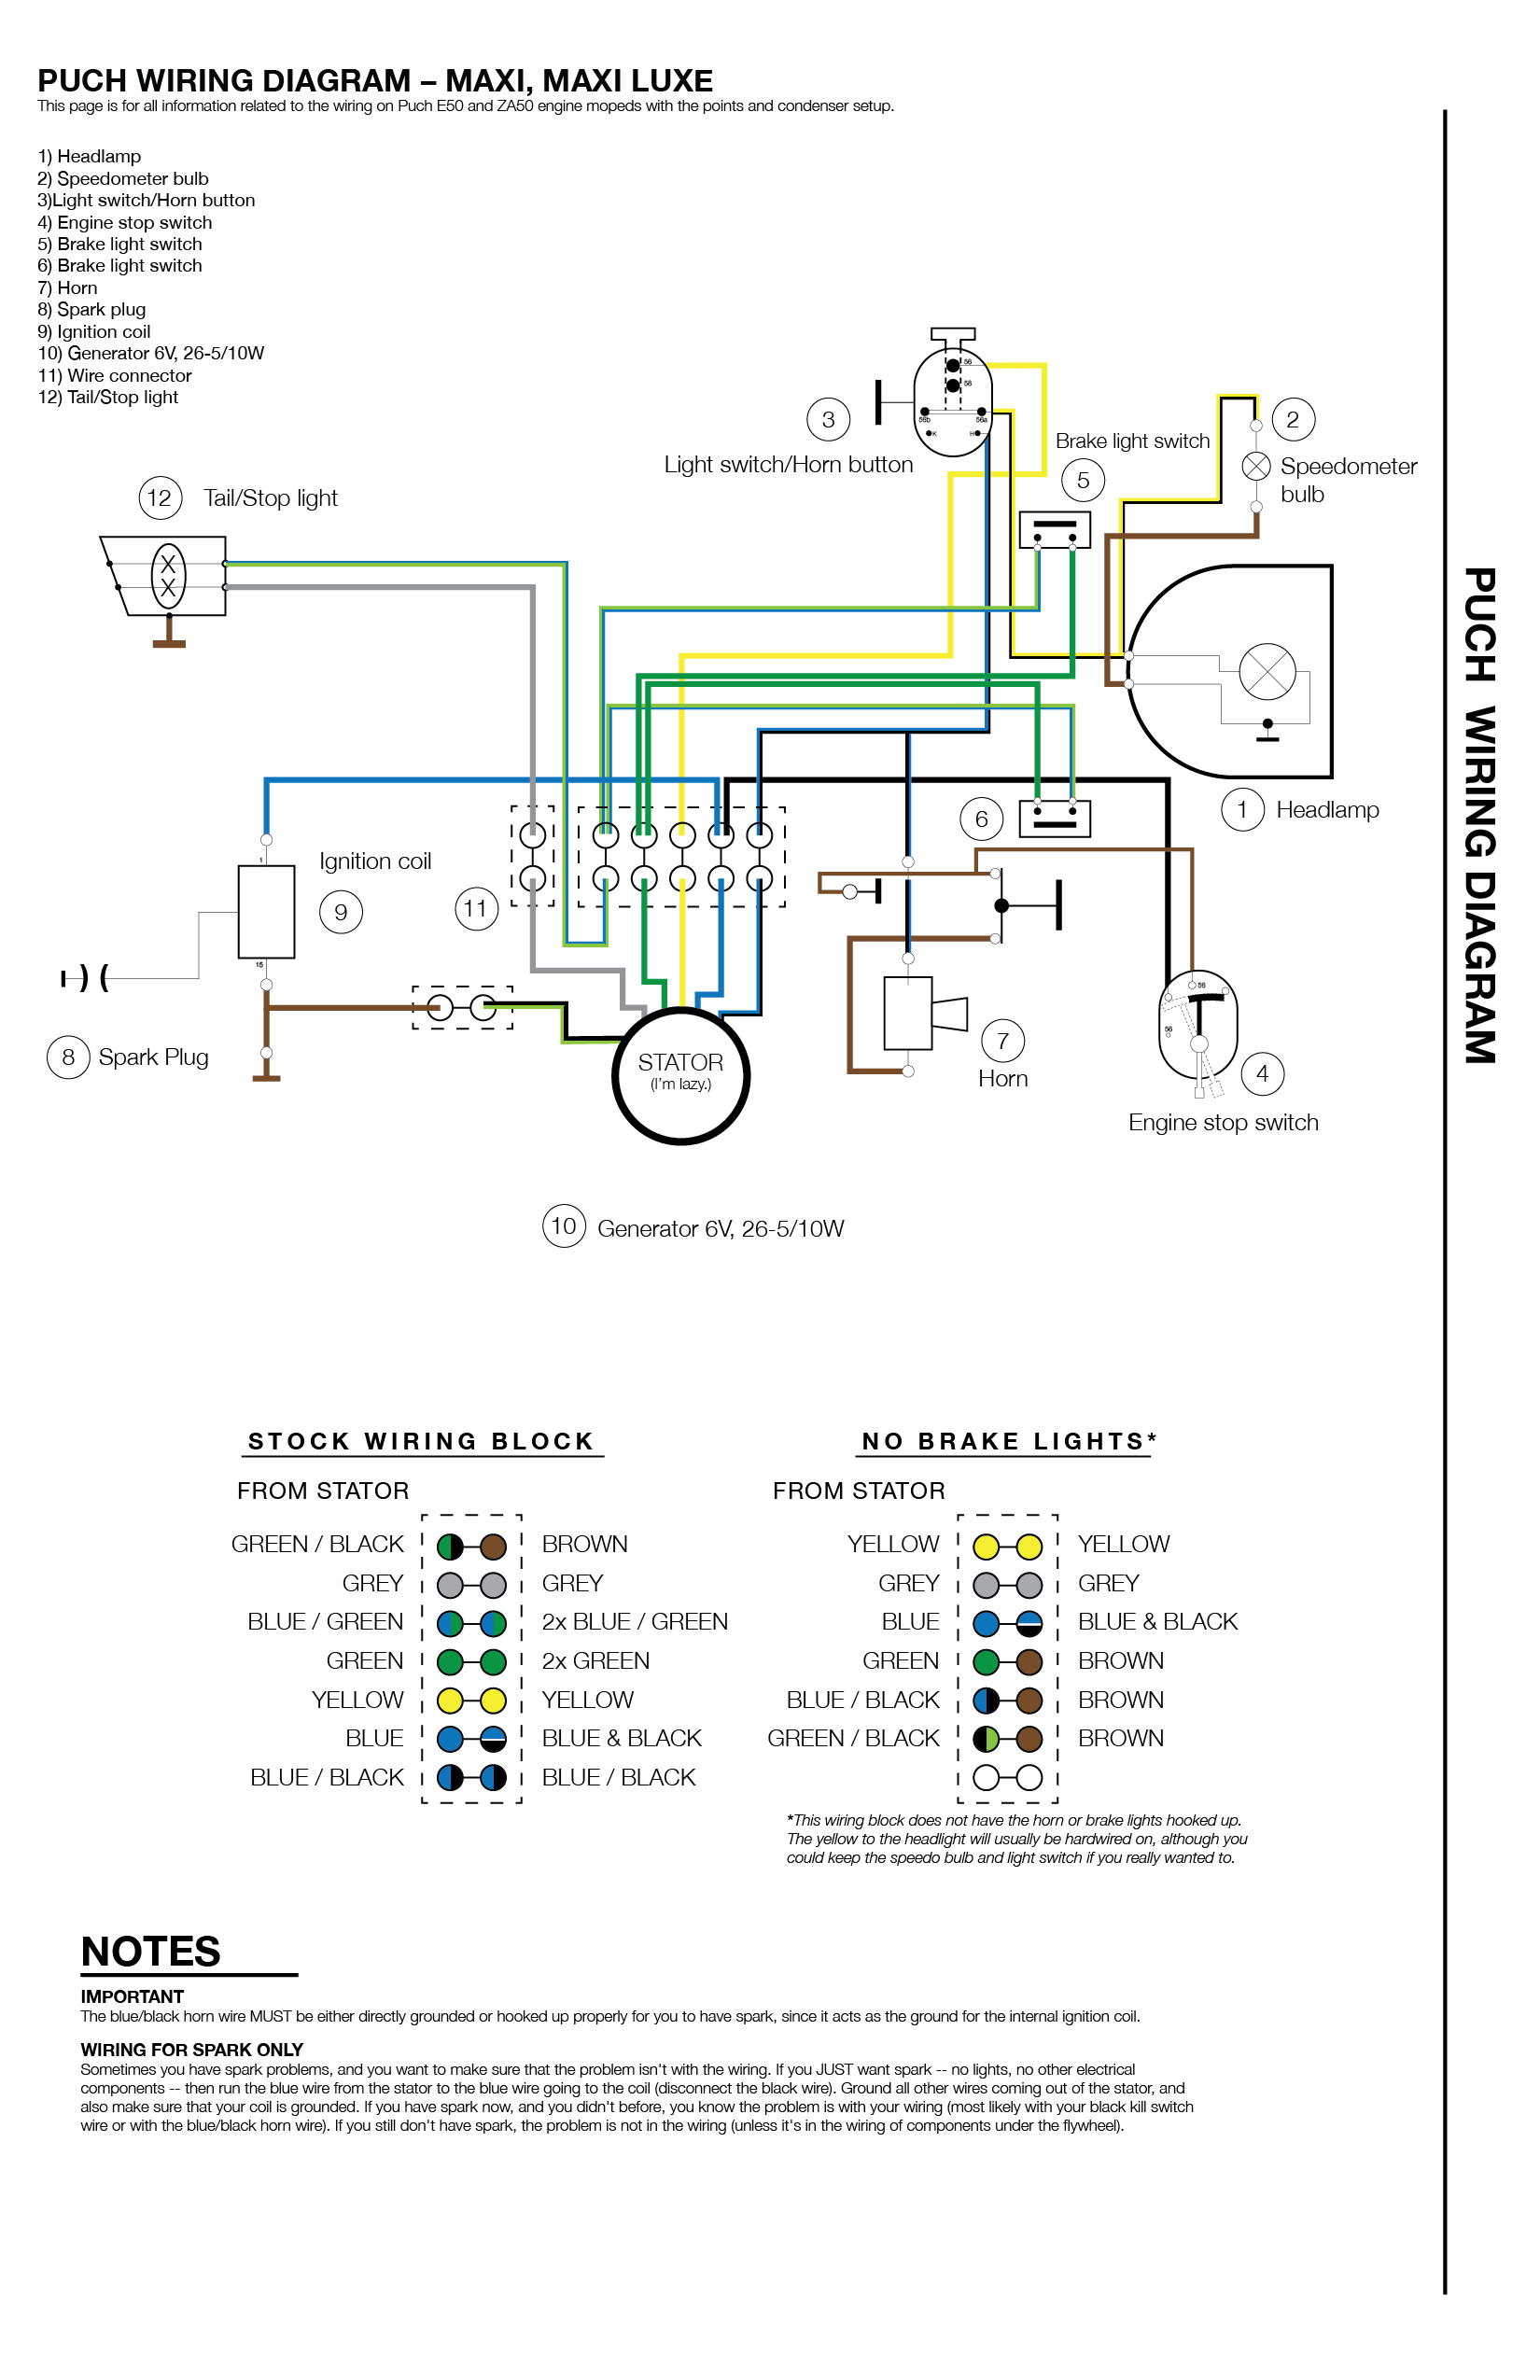 Puch Wiring - Moped Wiki - Brake Light Switch Wiring Diagram